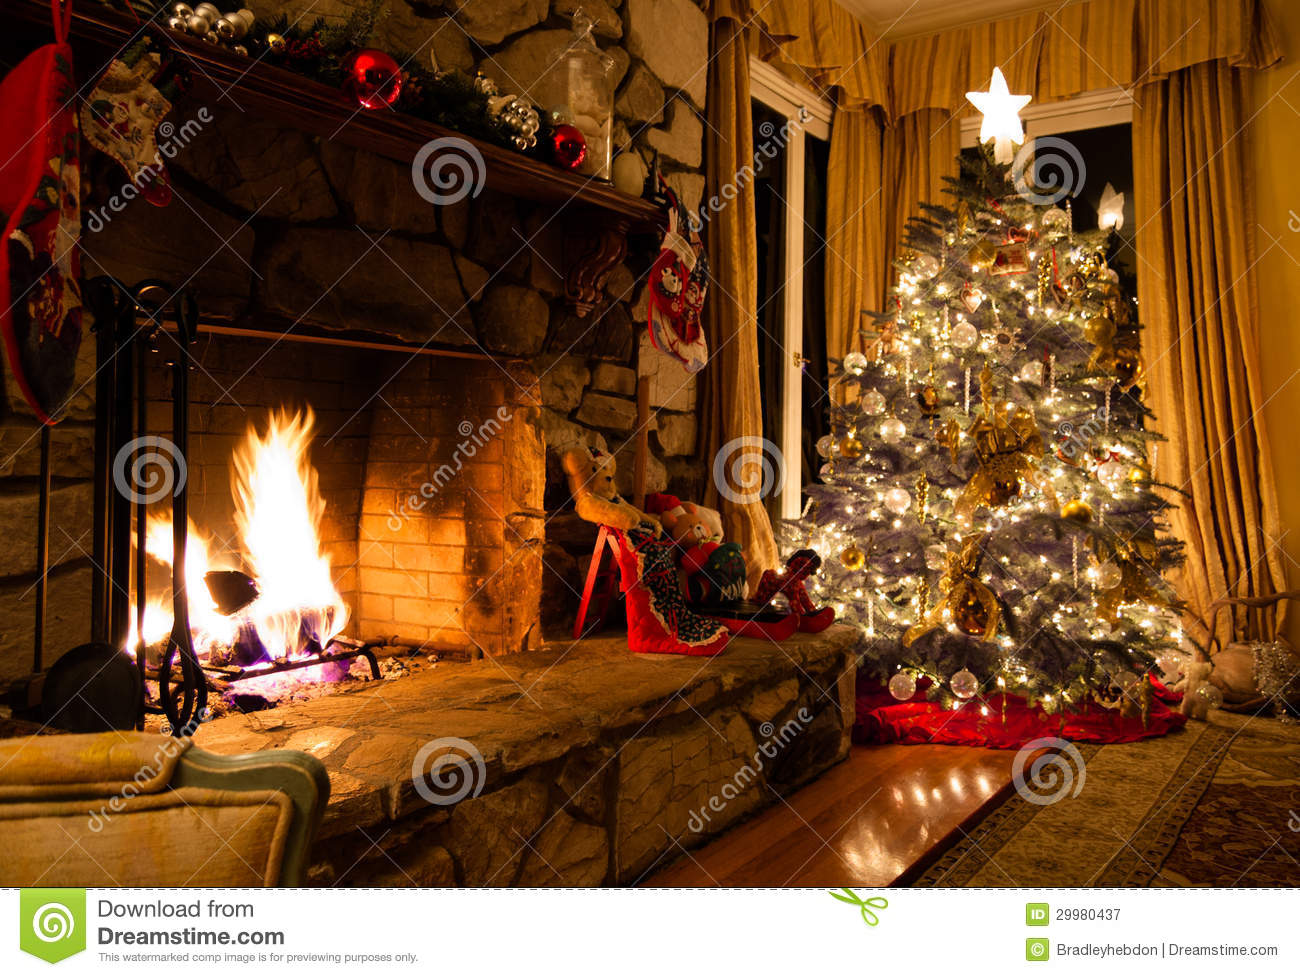 Christmas Tree And Rustic Fireplace In A Cozy Home Stock ...